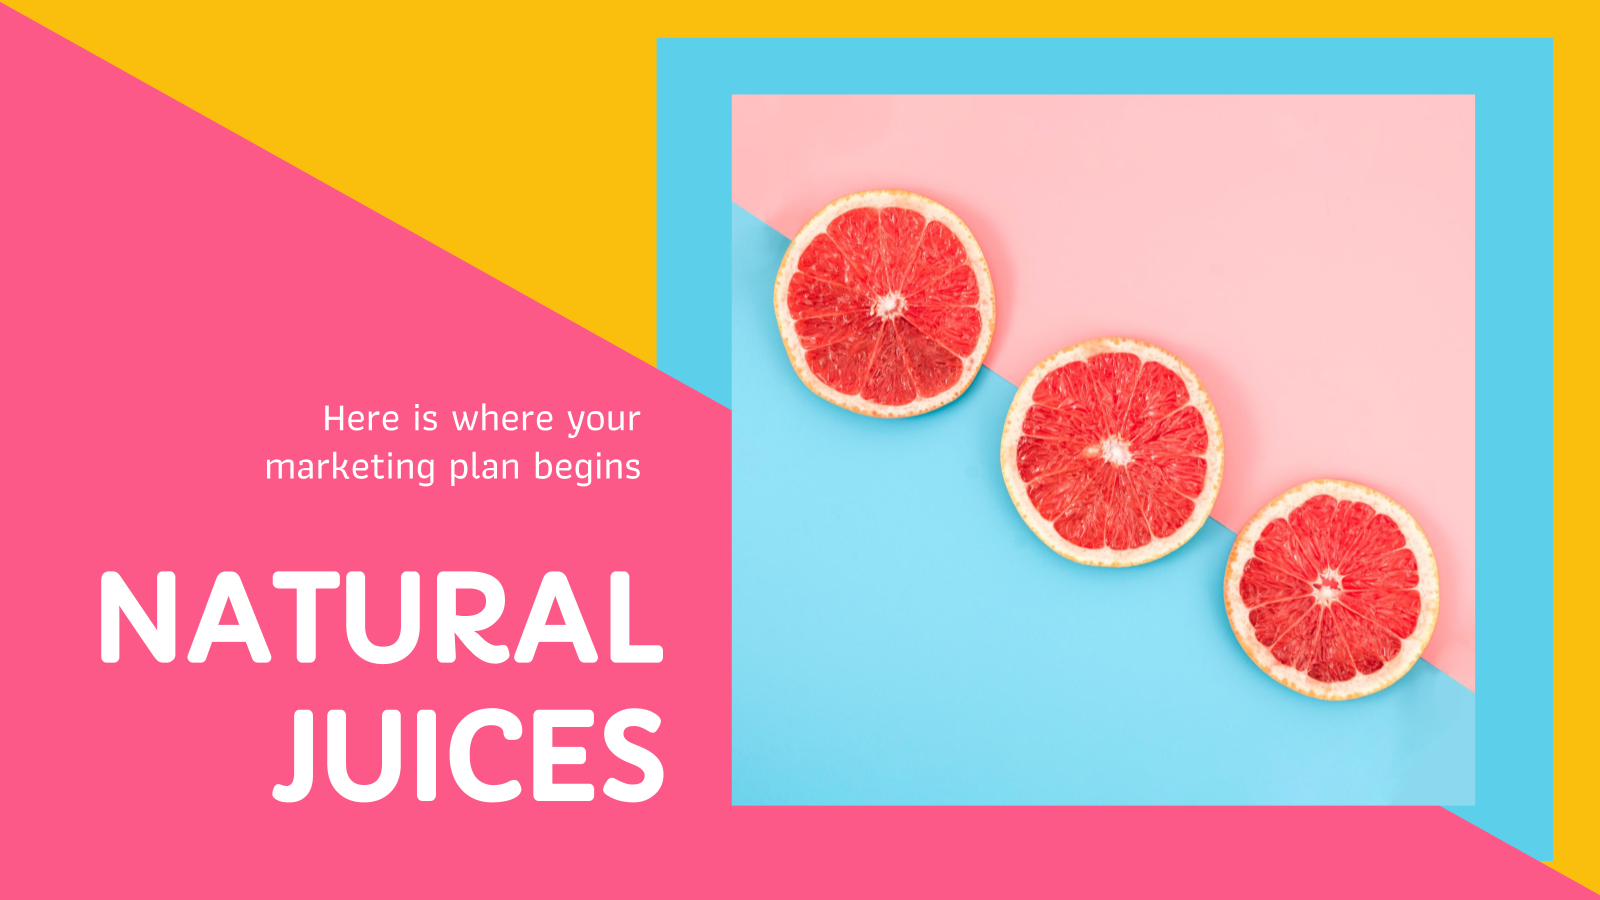 Natural Juices Marketing Plan presentation template